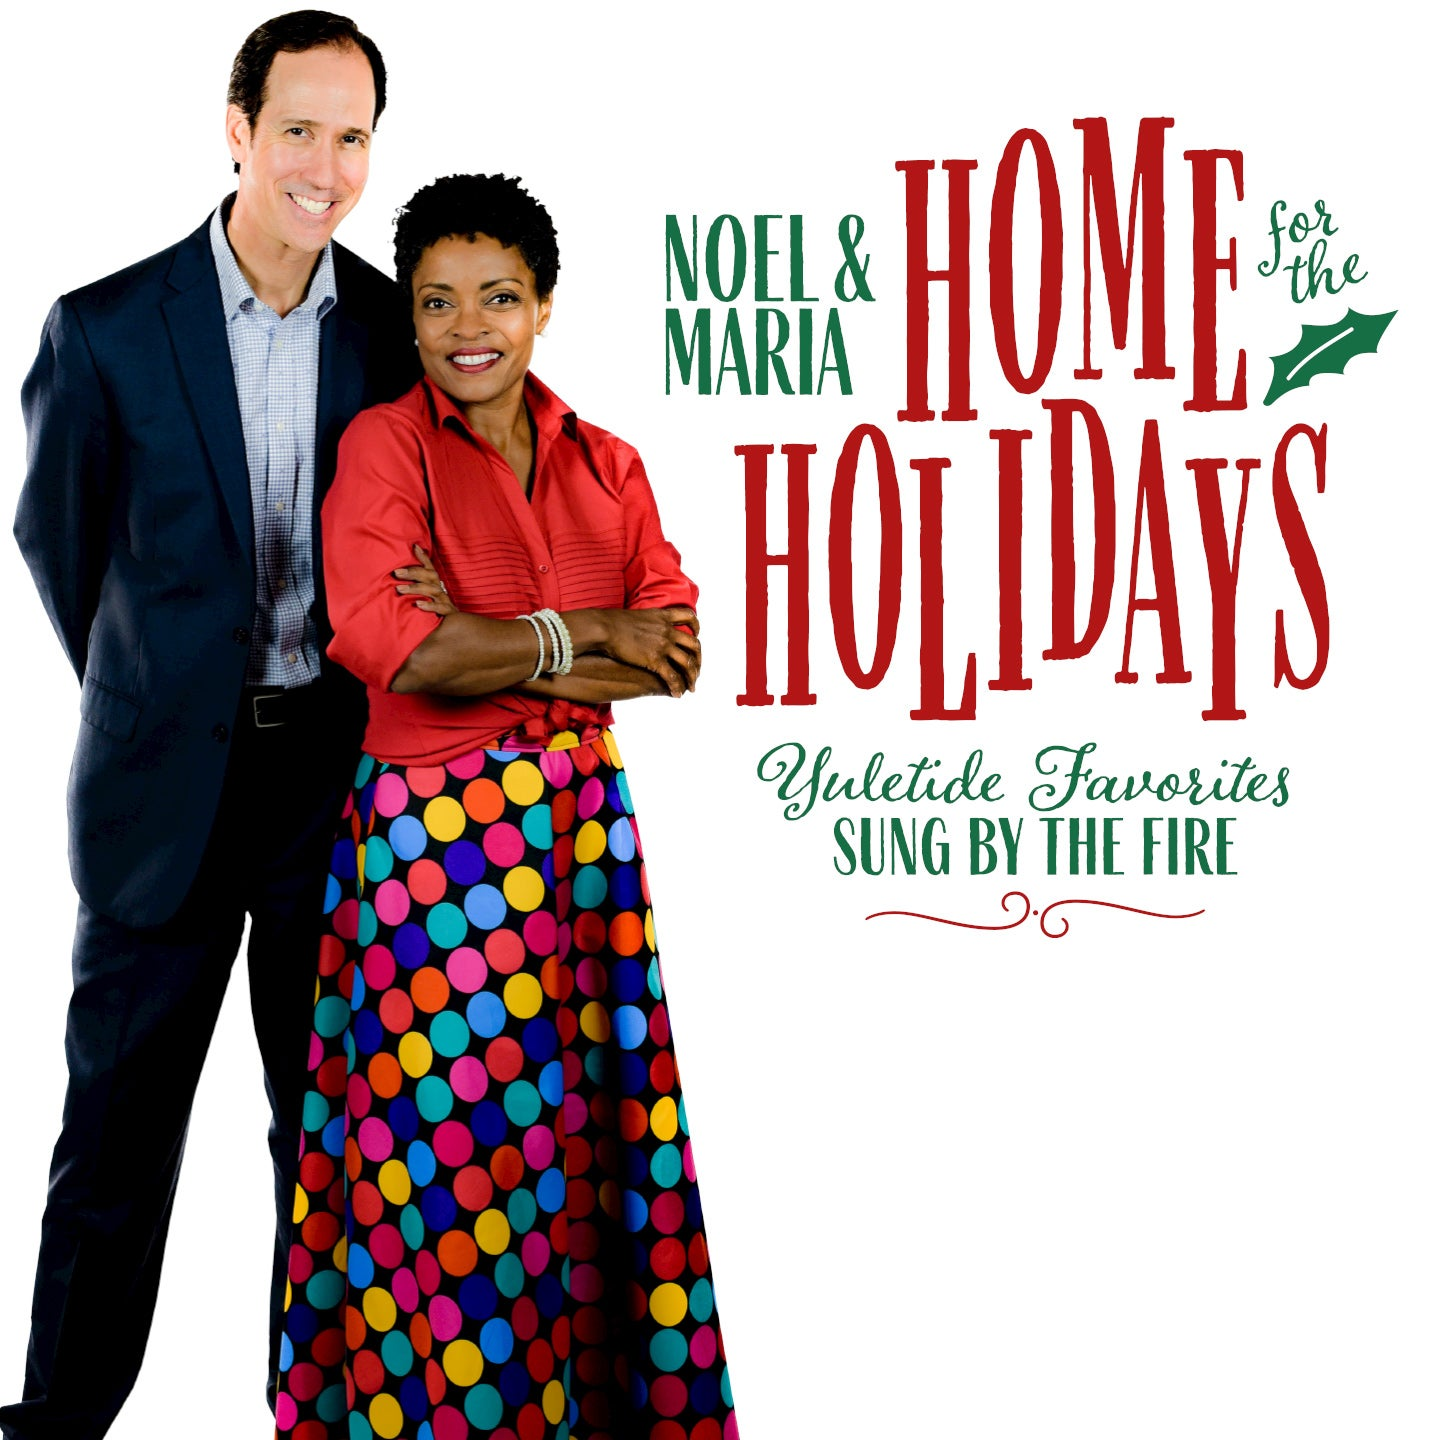 Noel and Maria: Home for the Holidays